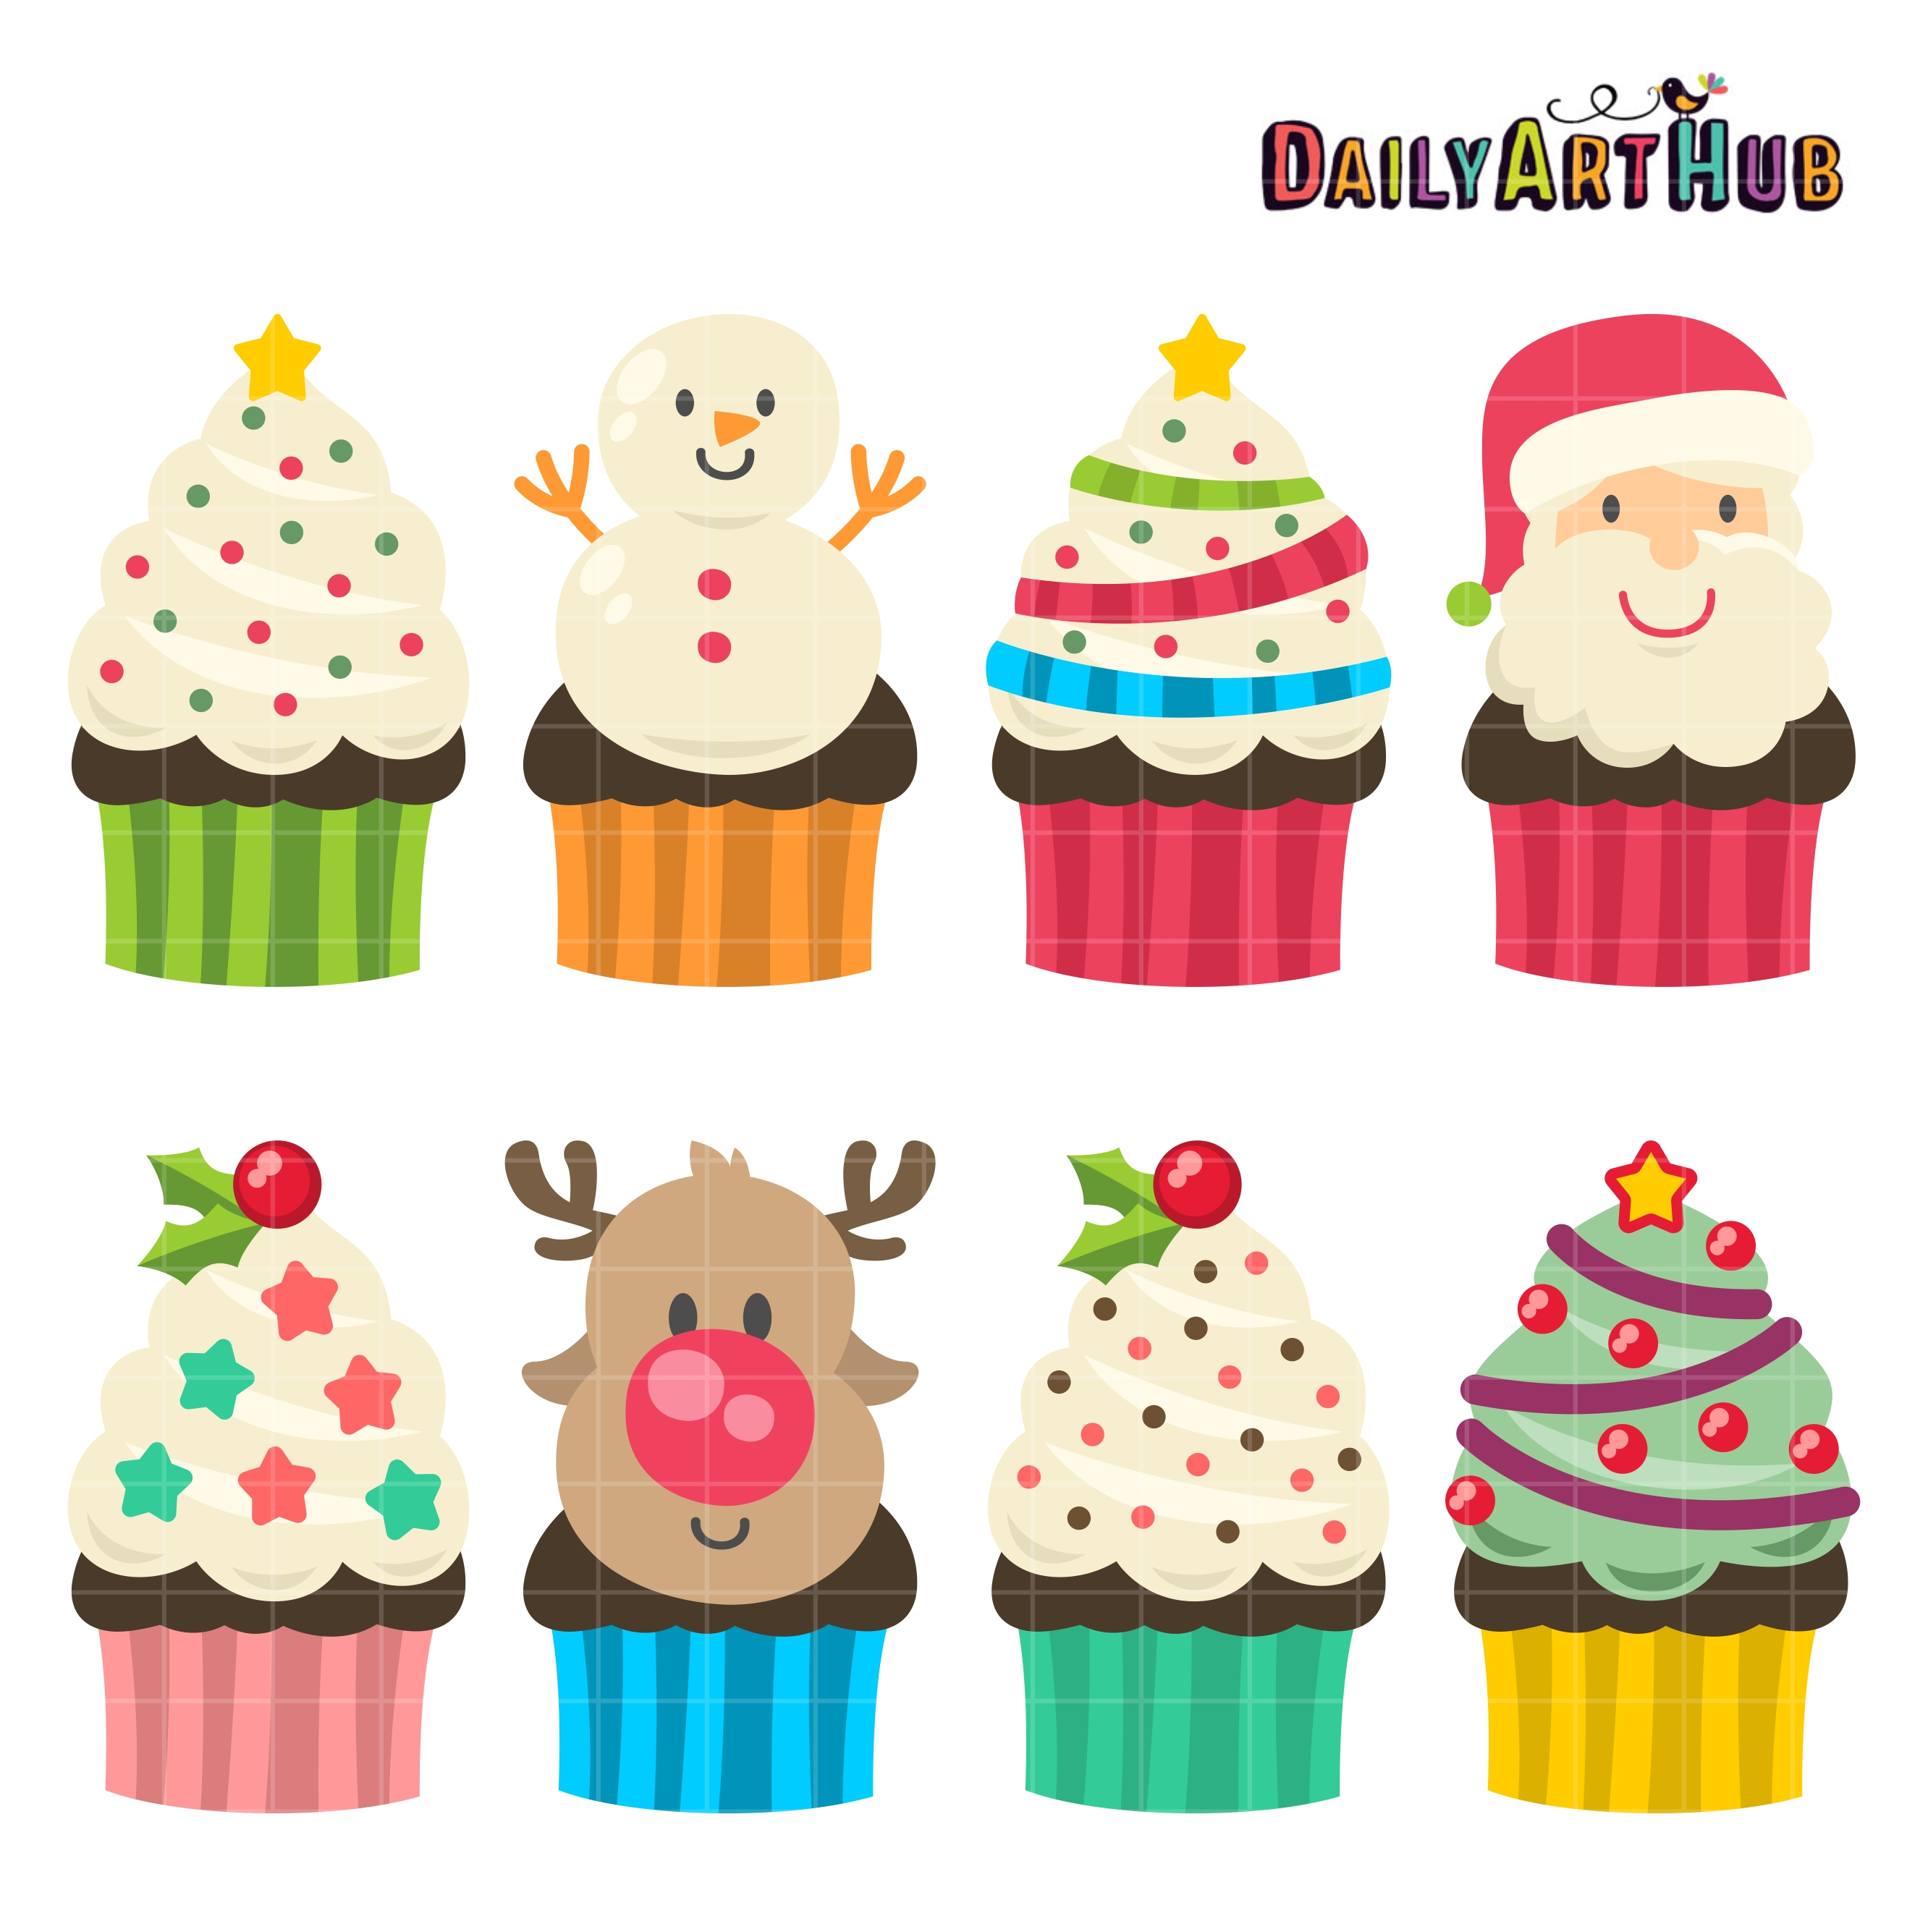 christmas yummy cupcakes clip art set daily art hub Bake Sale Items Clip Art Bake Sale Cake Cliparts